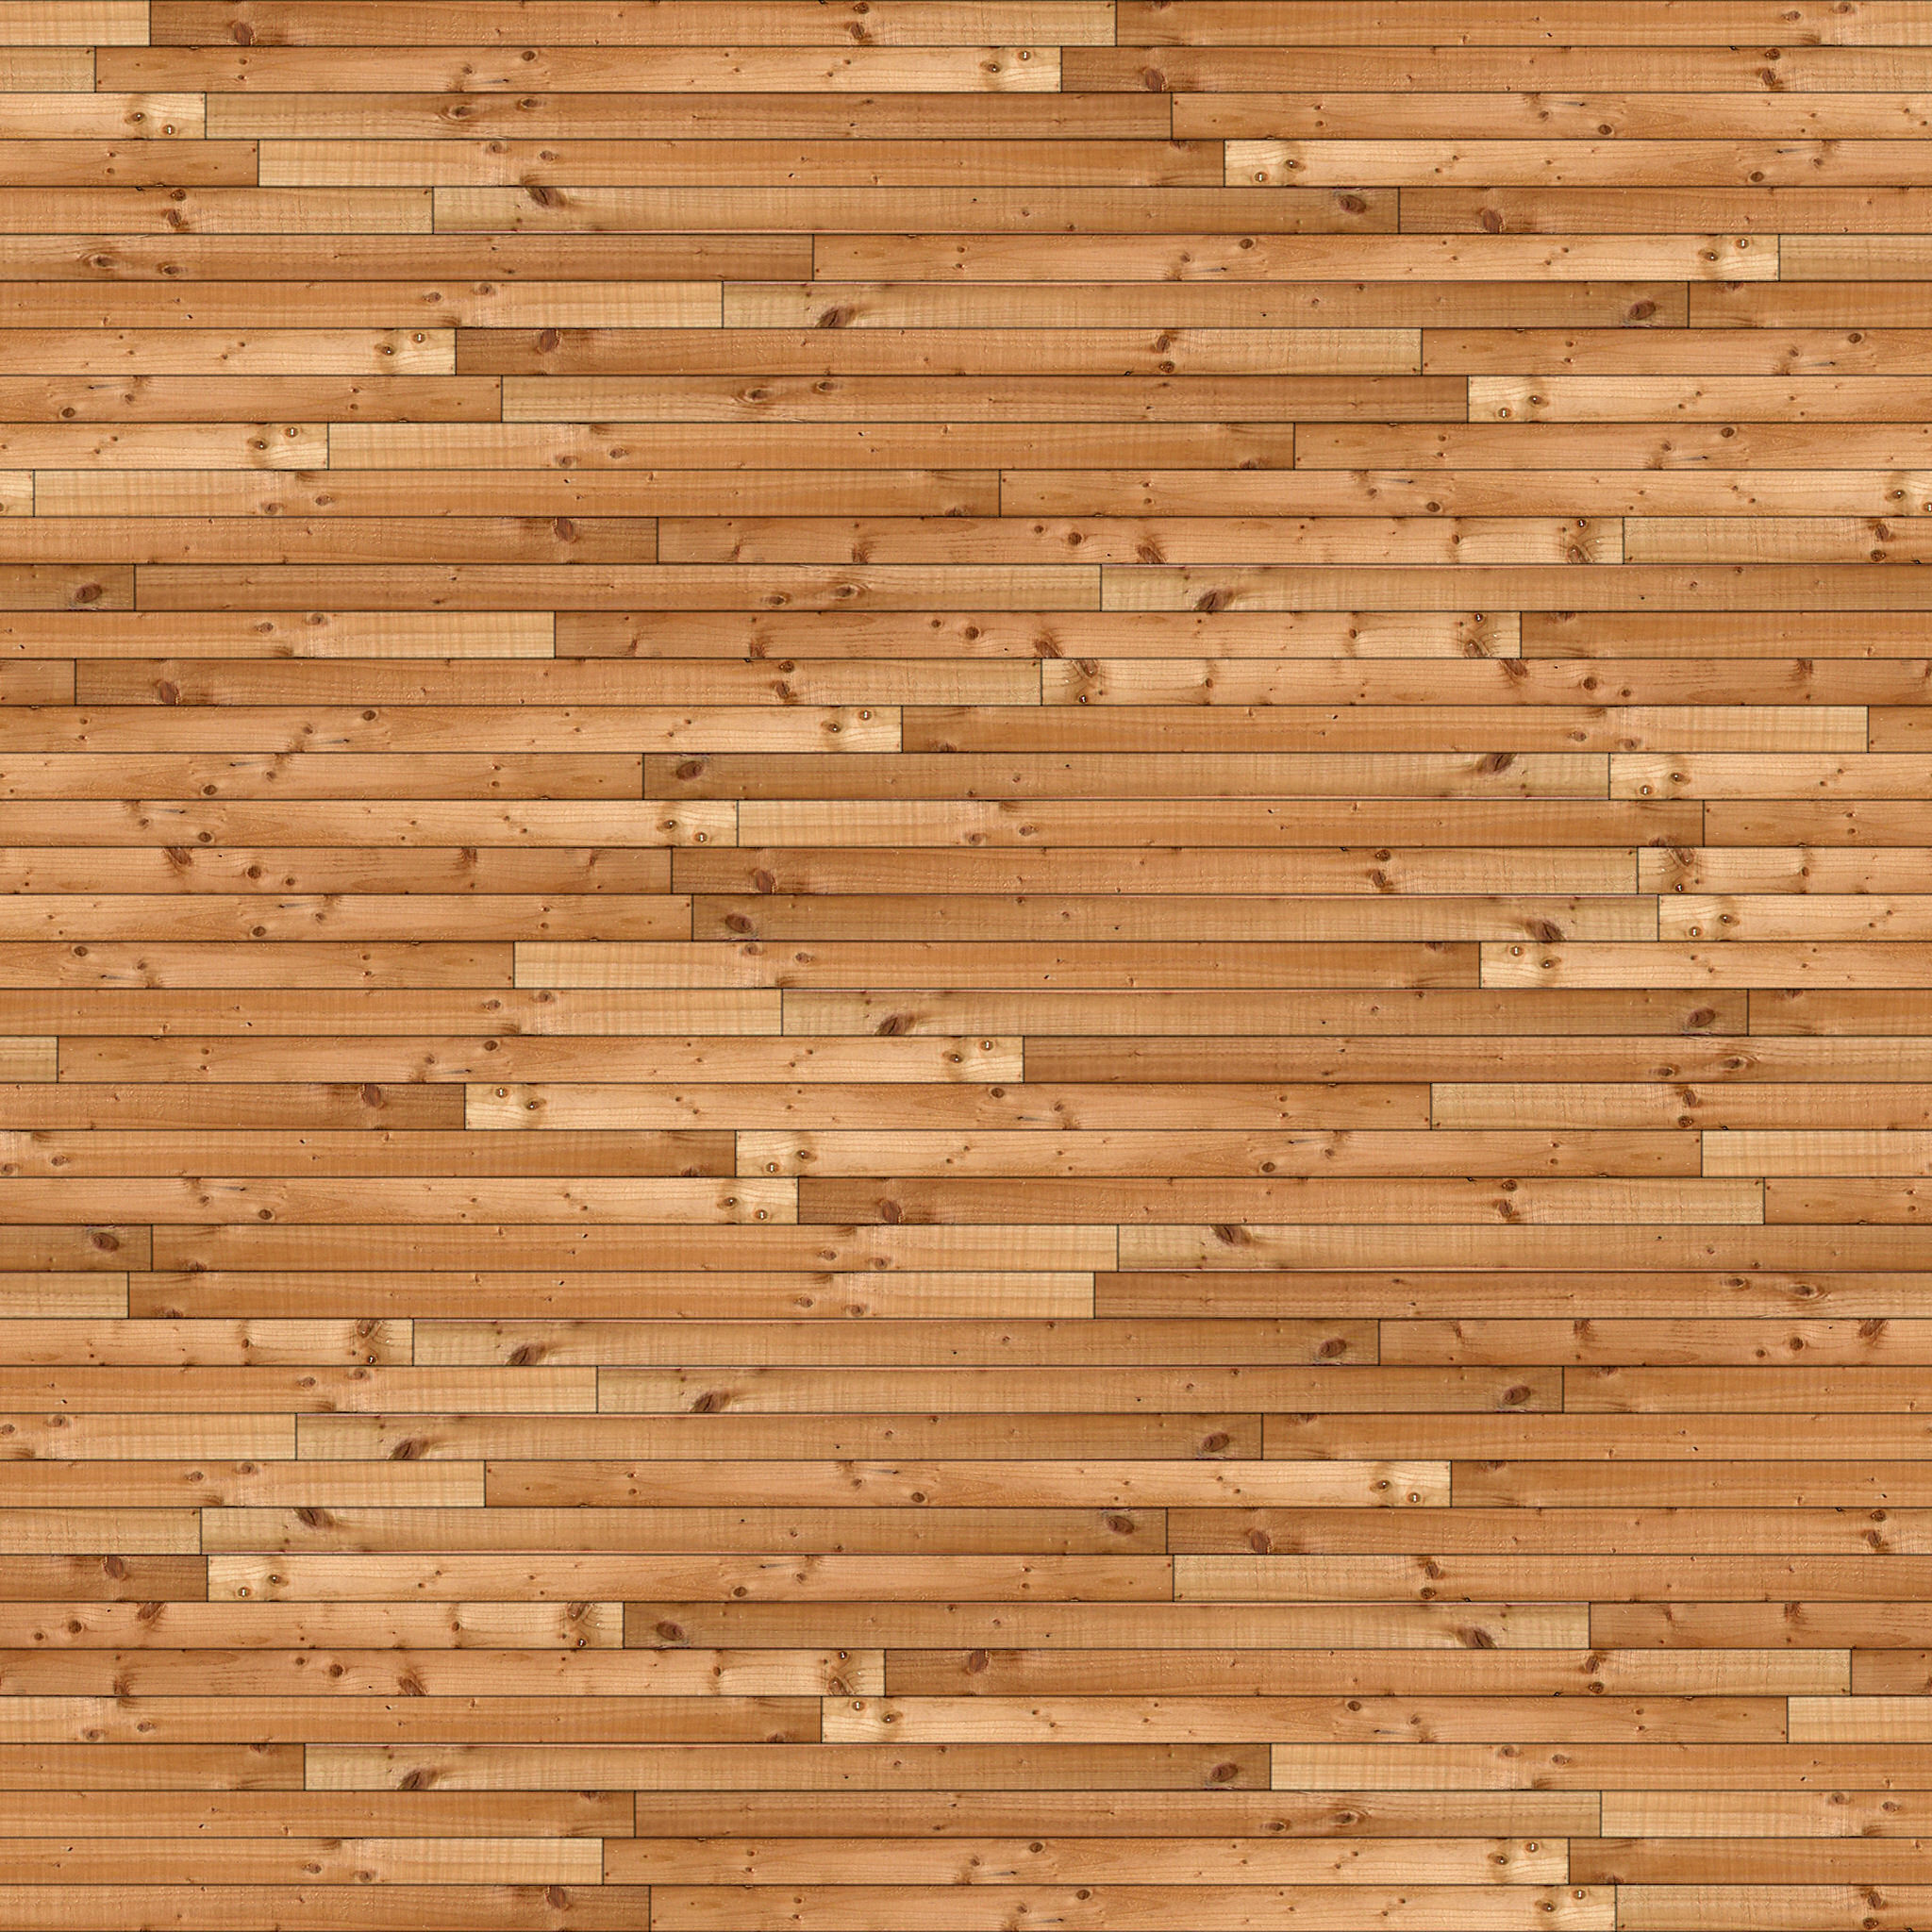 Free download: Brick and Wood textures | Bricks'n'Tiles